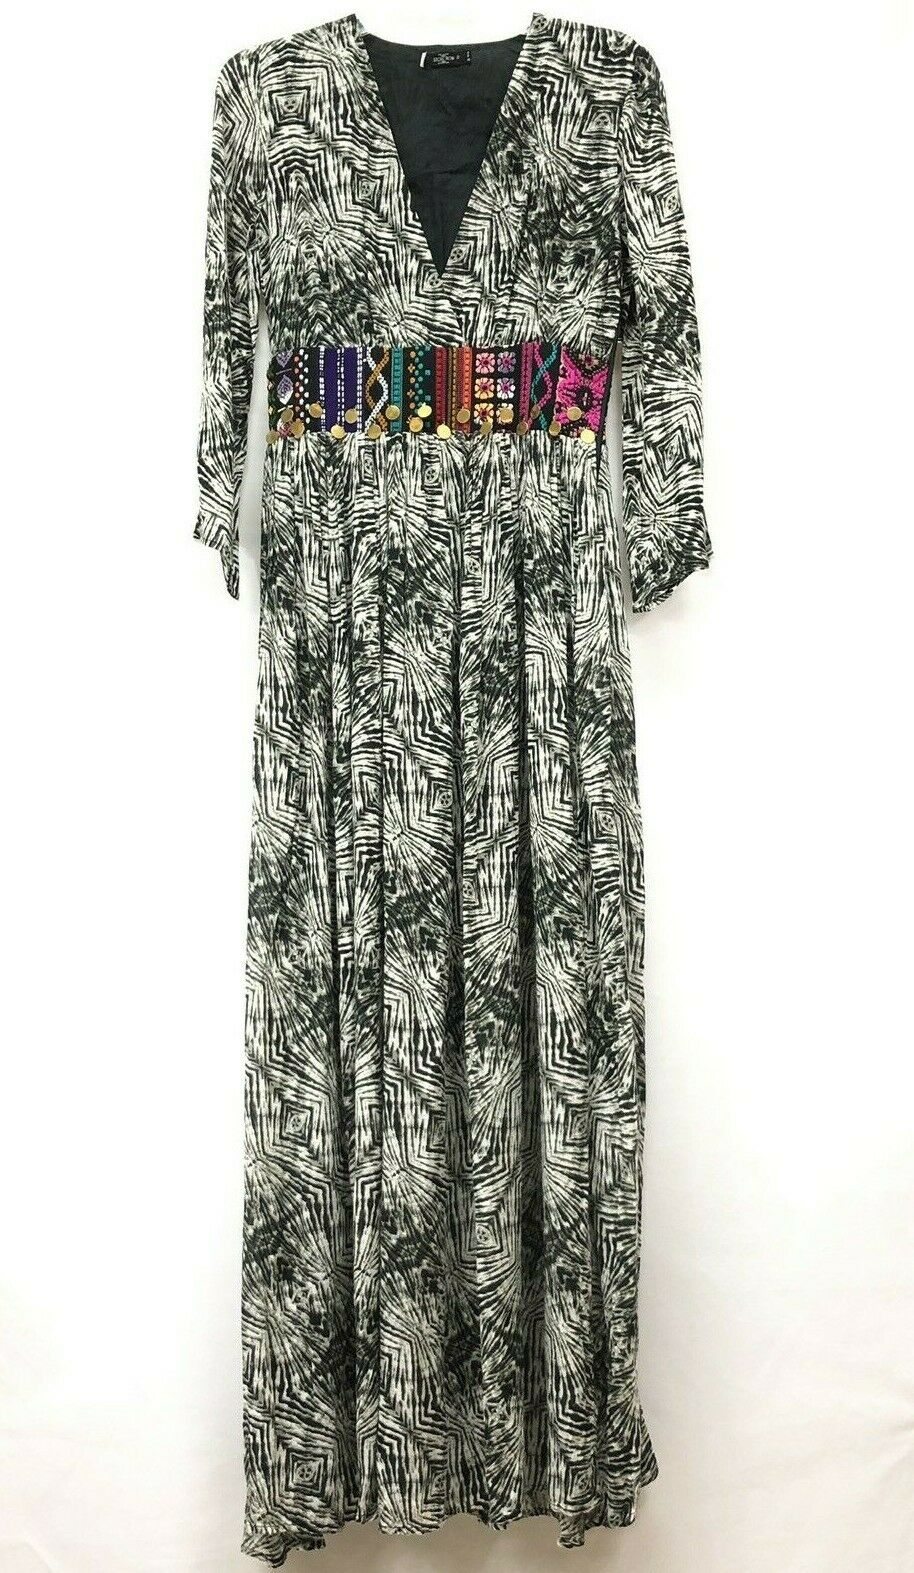 NEW Volcom Boho Print Embroidered Maxi Dress Sz S Stunning